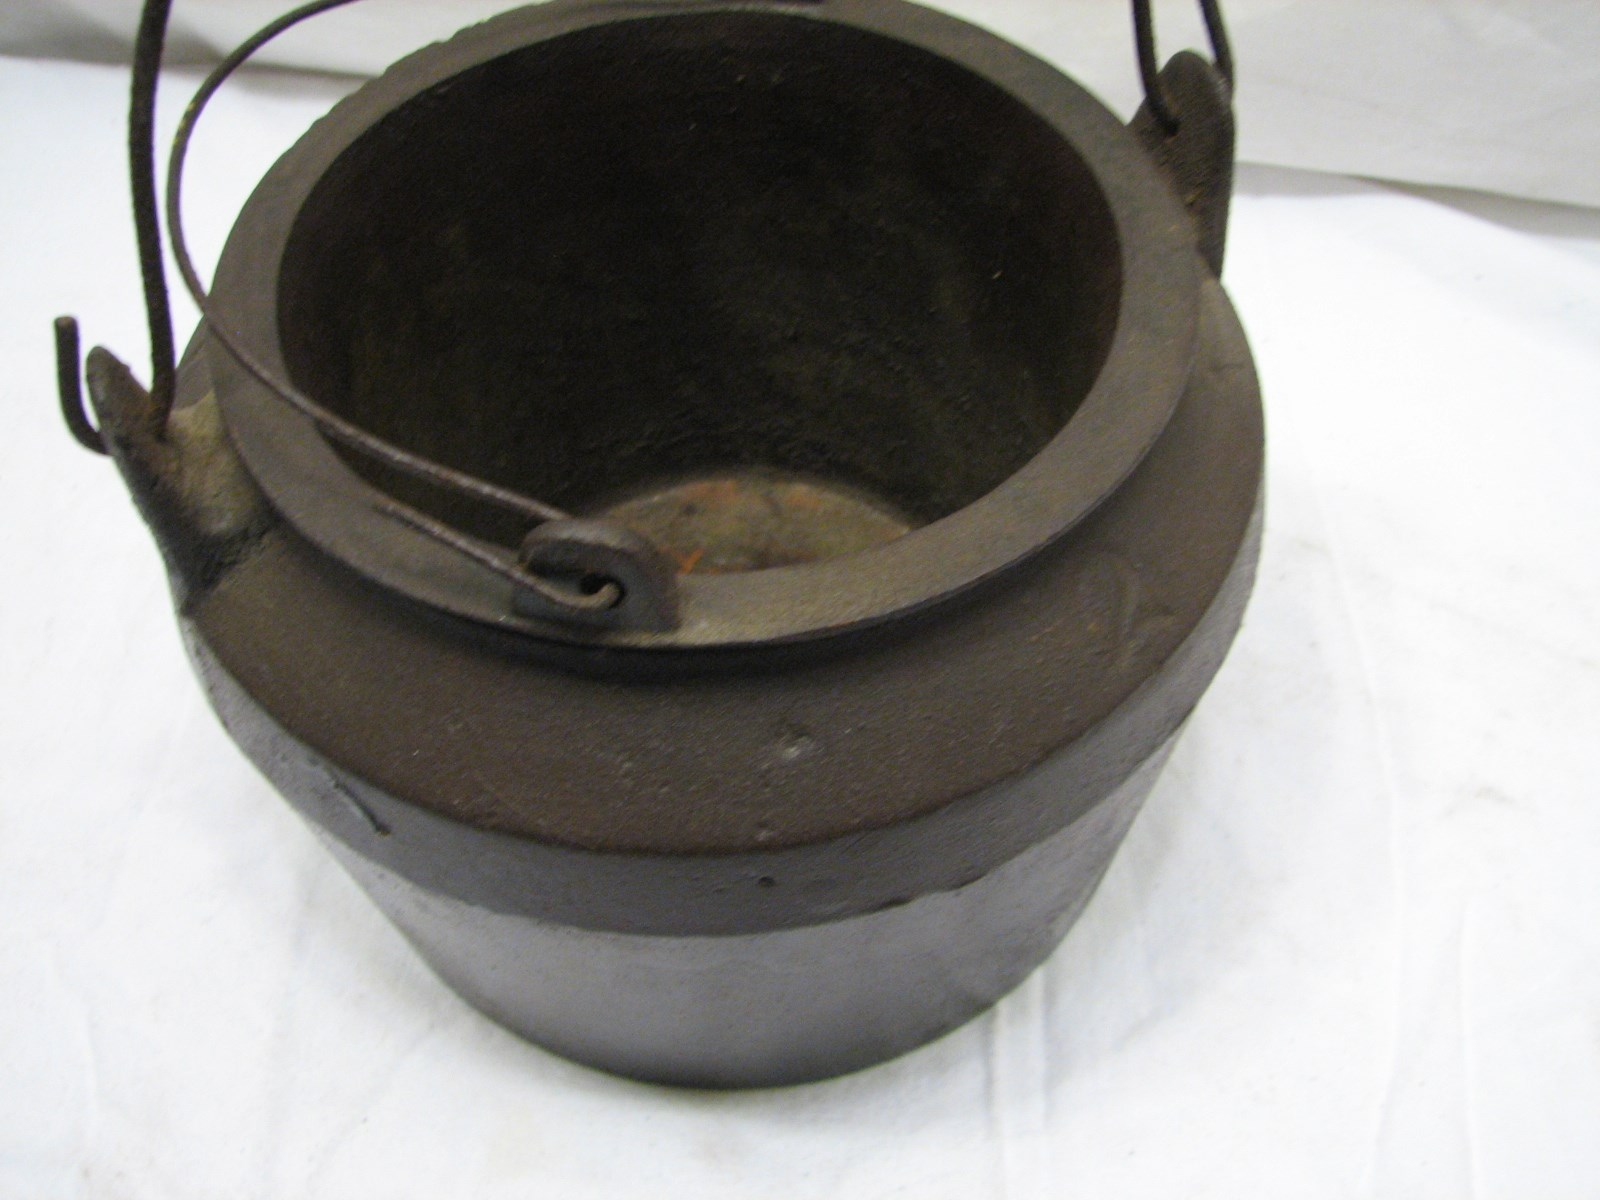 Cast Iron Pot Antique Marietta Cast Iron Gypsy Glue Pot Double Boiler